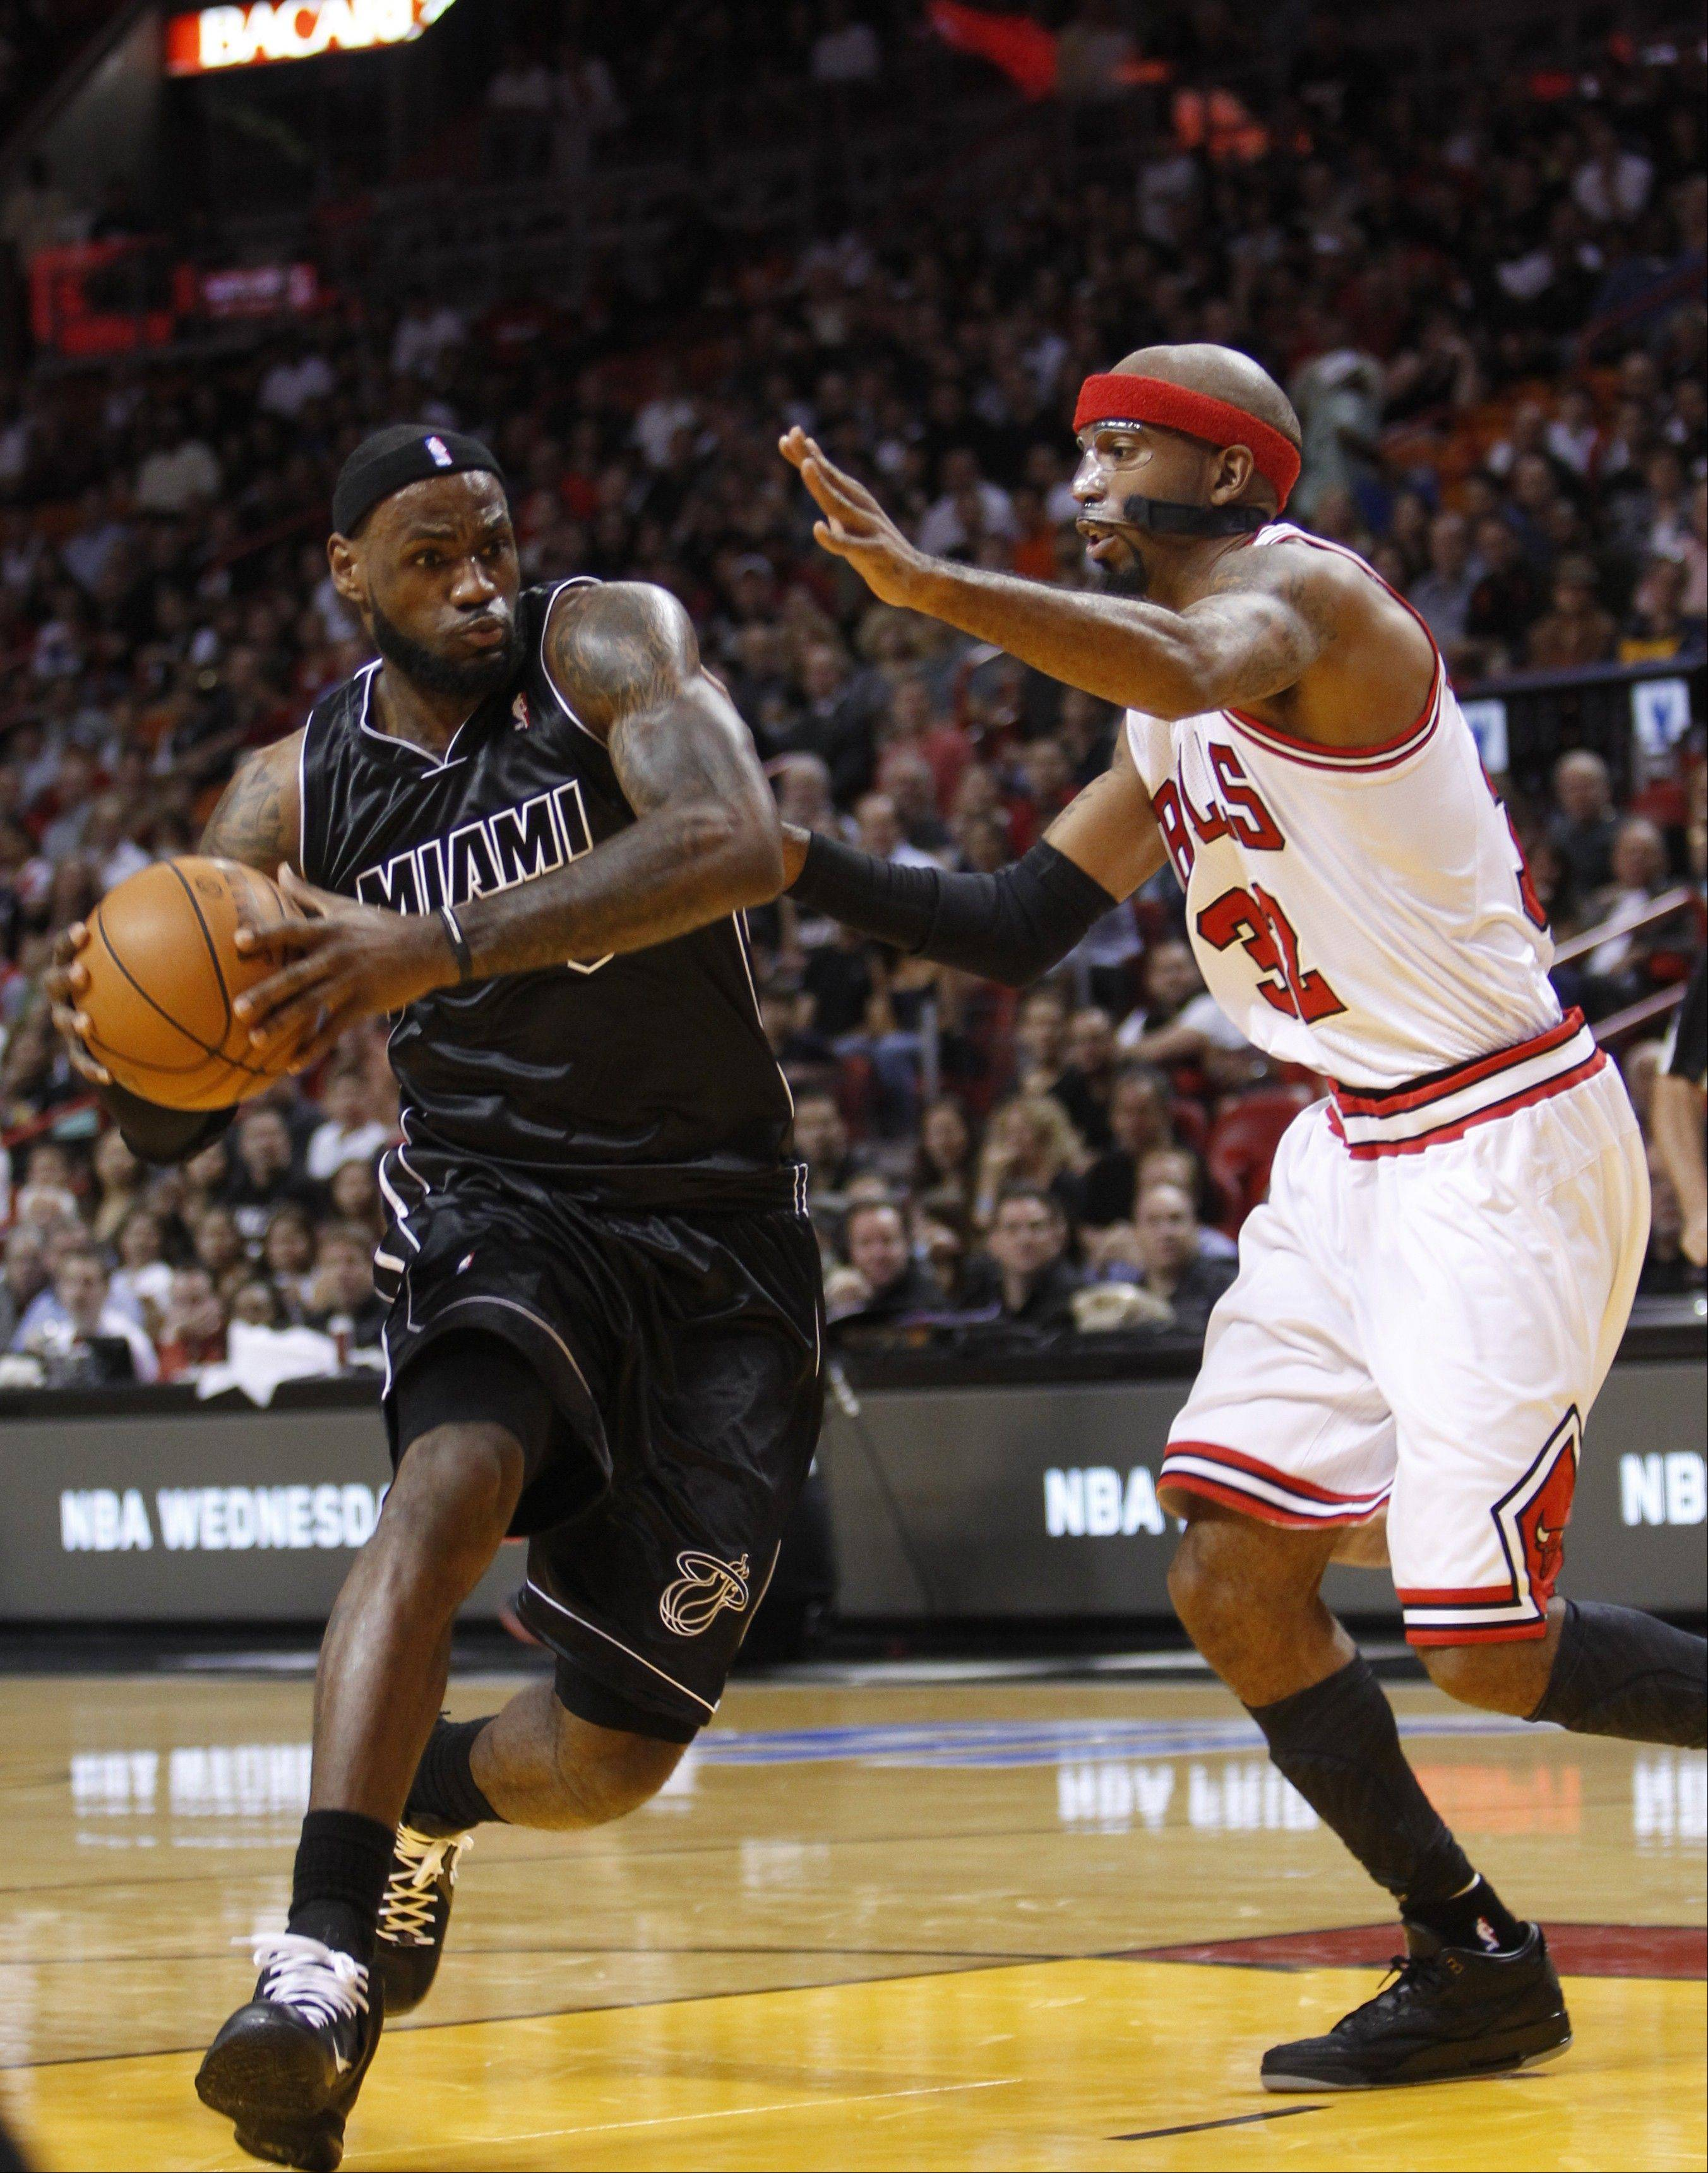 LeBron James, left, drives to the basket against guard Richard Hamilton on Jan. 29, 2012.